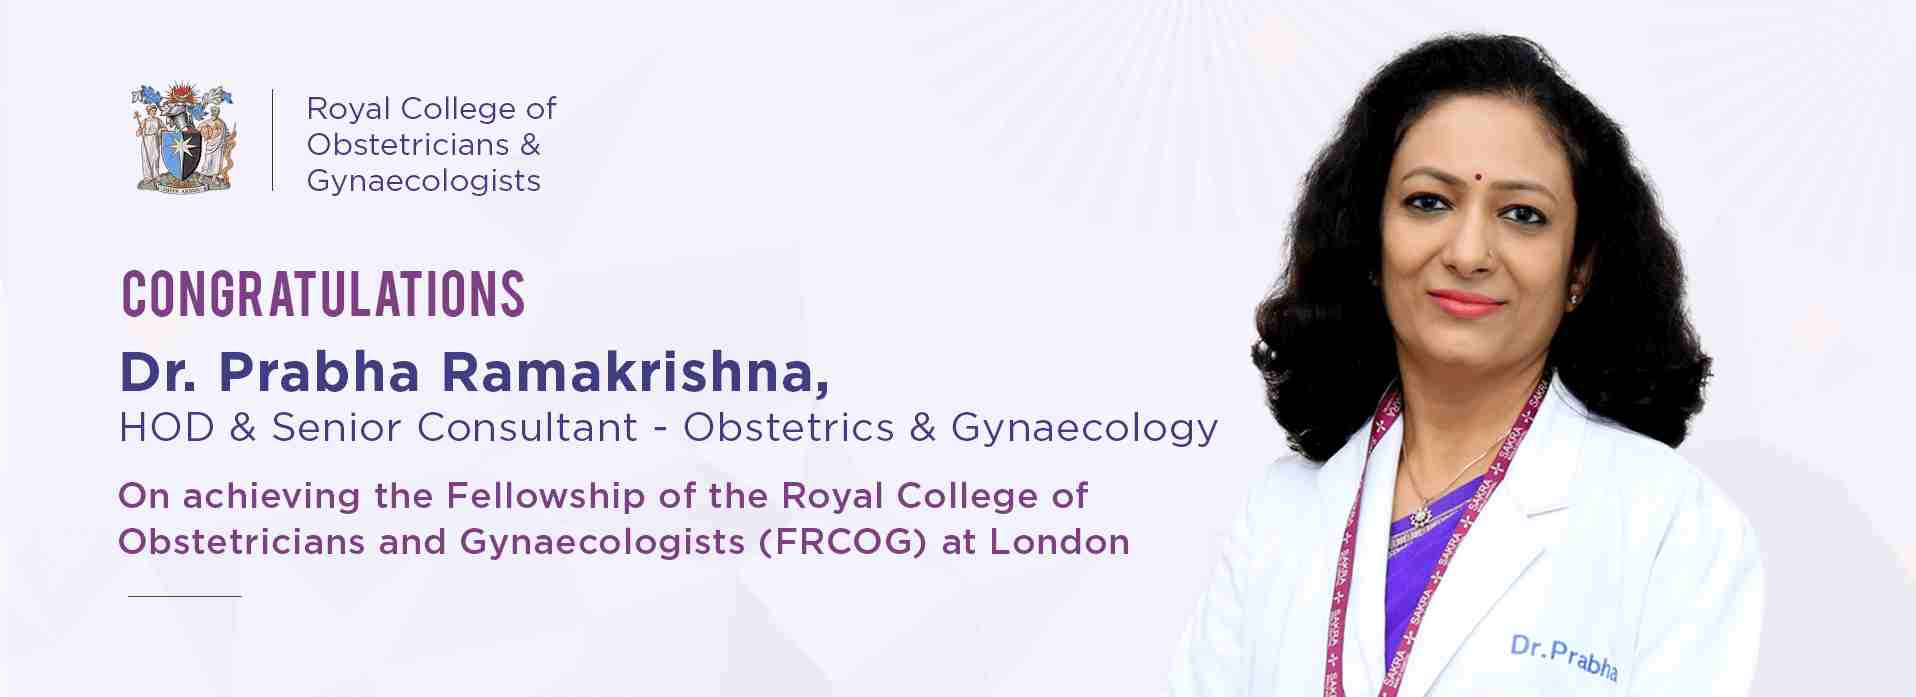 Dr. Prabha Ramakrishna is a Senior Consultant and Head in Obstetrics and Gynaecology at Sakra World Hospital in Bangalore